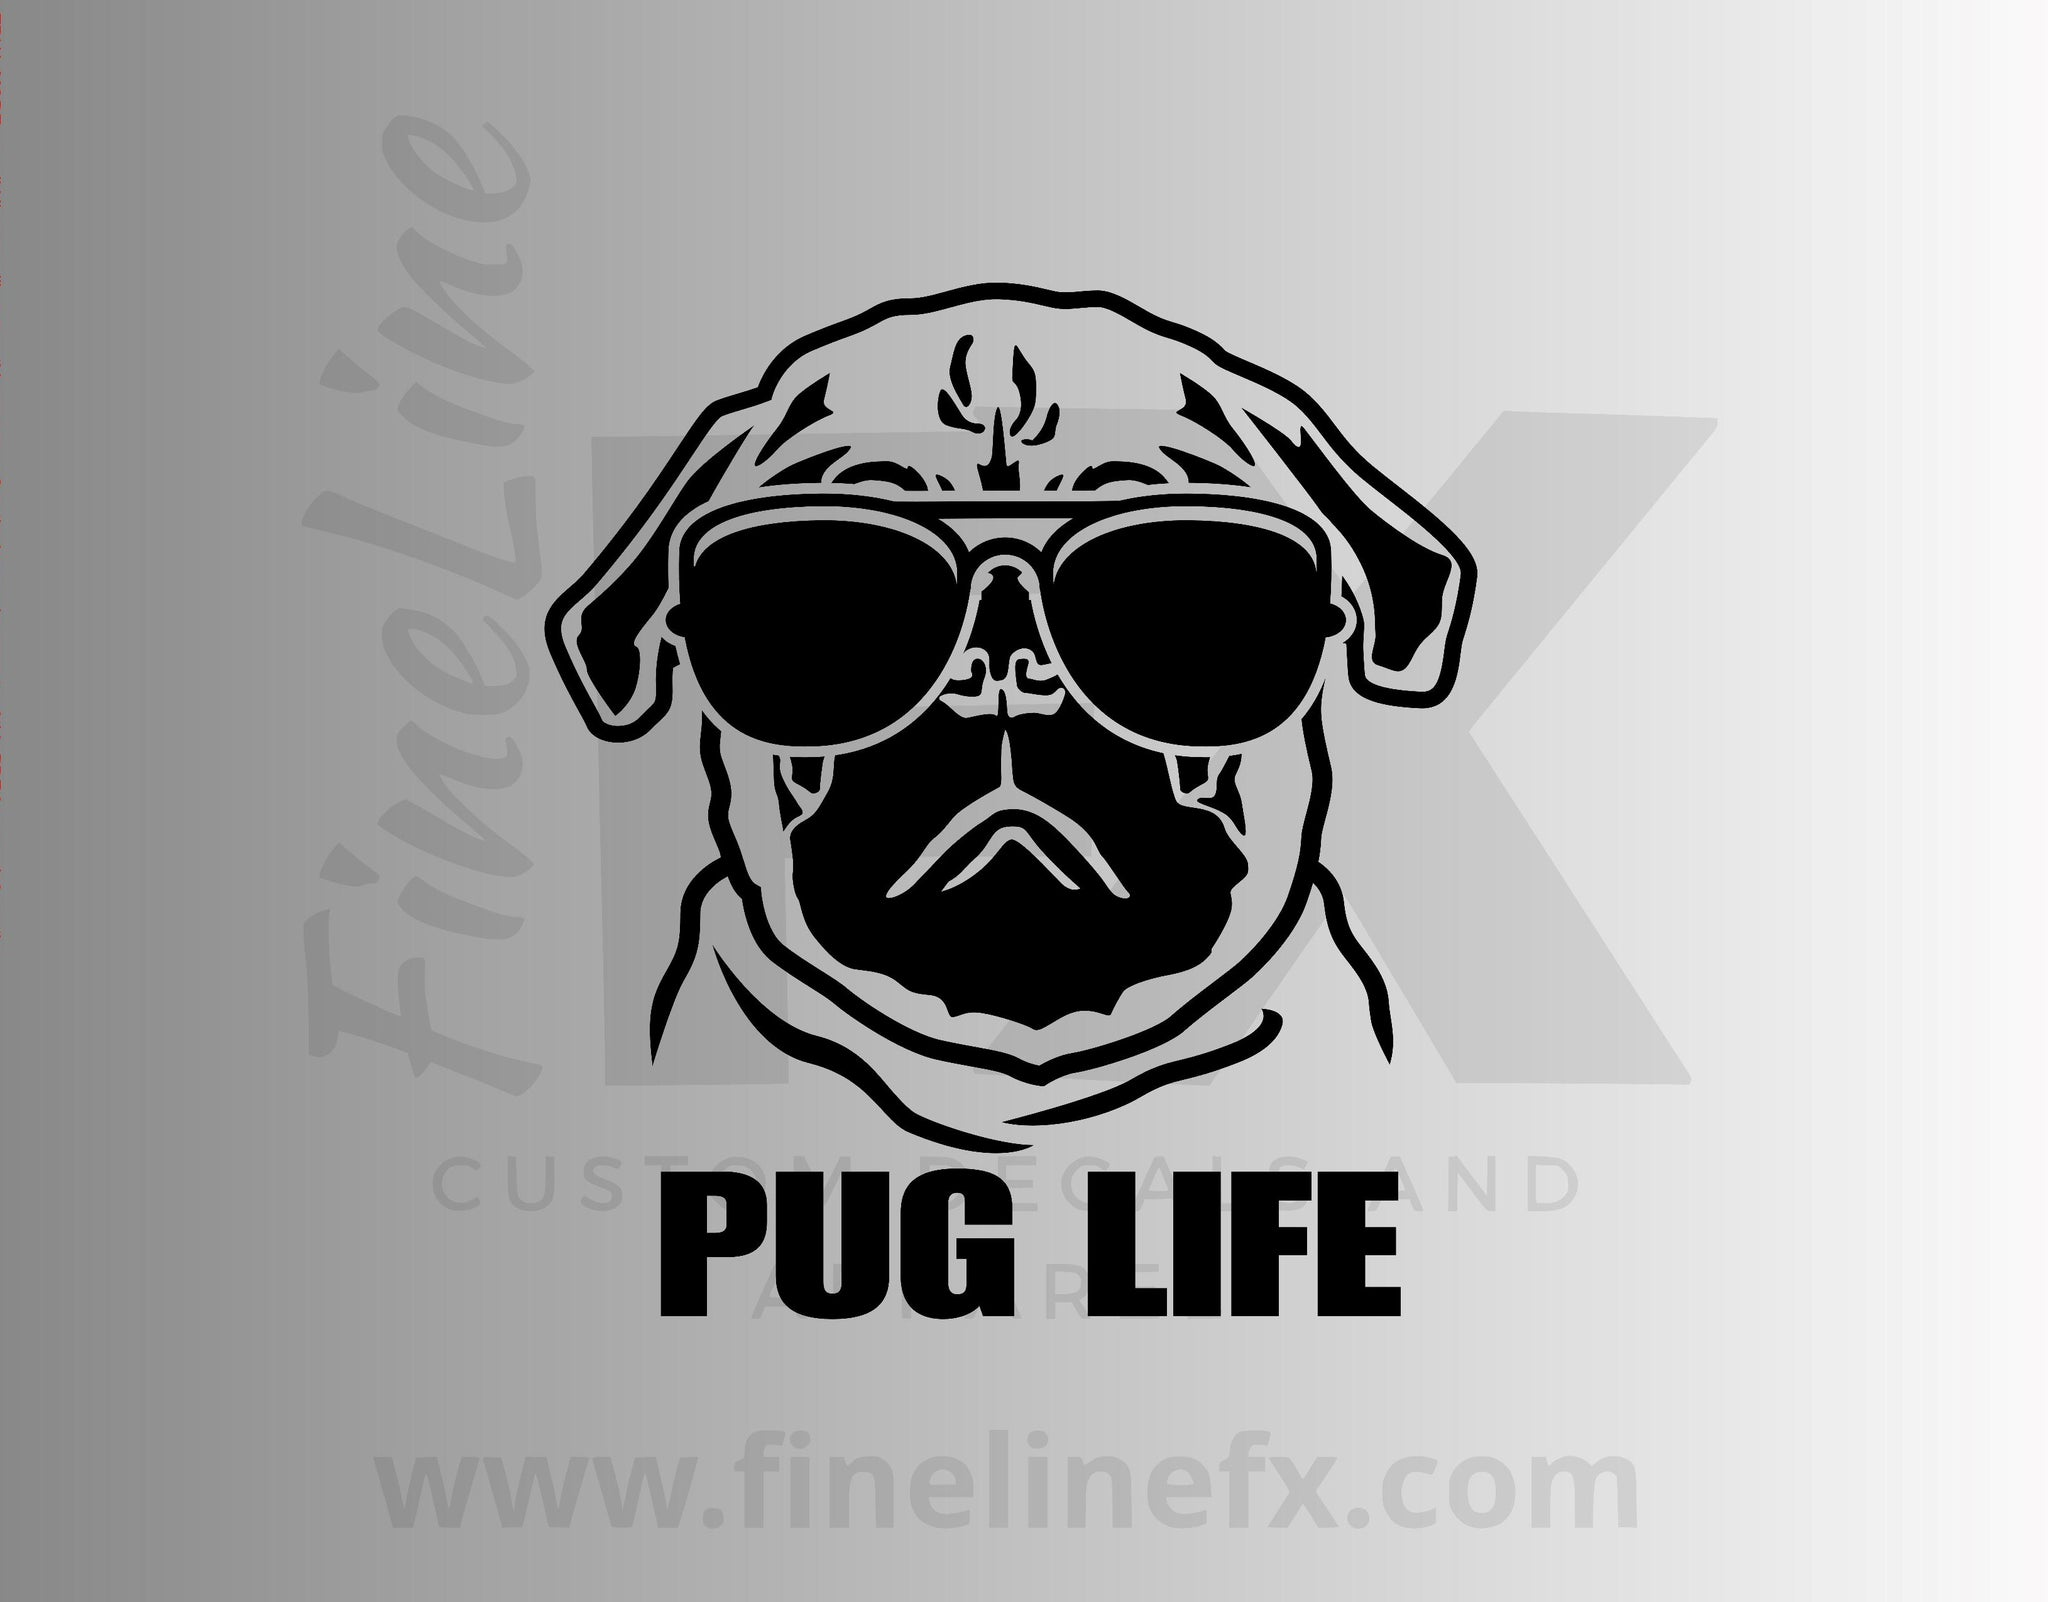 Pug Life Vinyl Decal Sticker